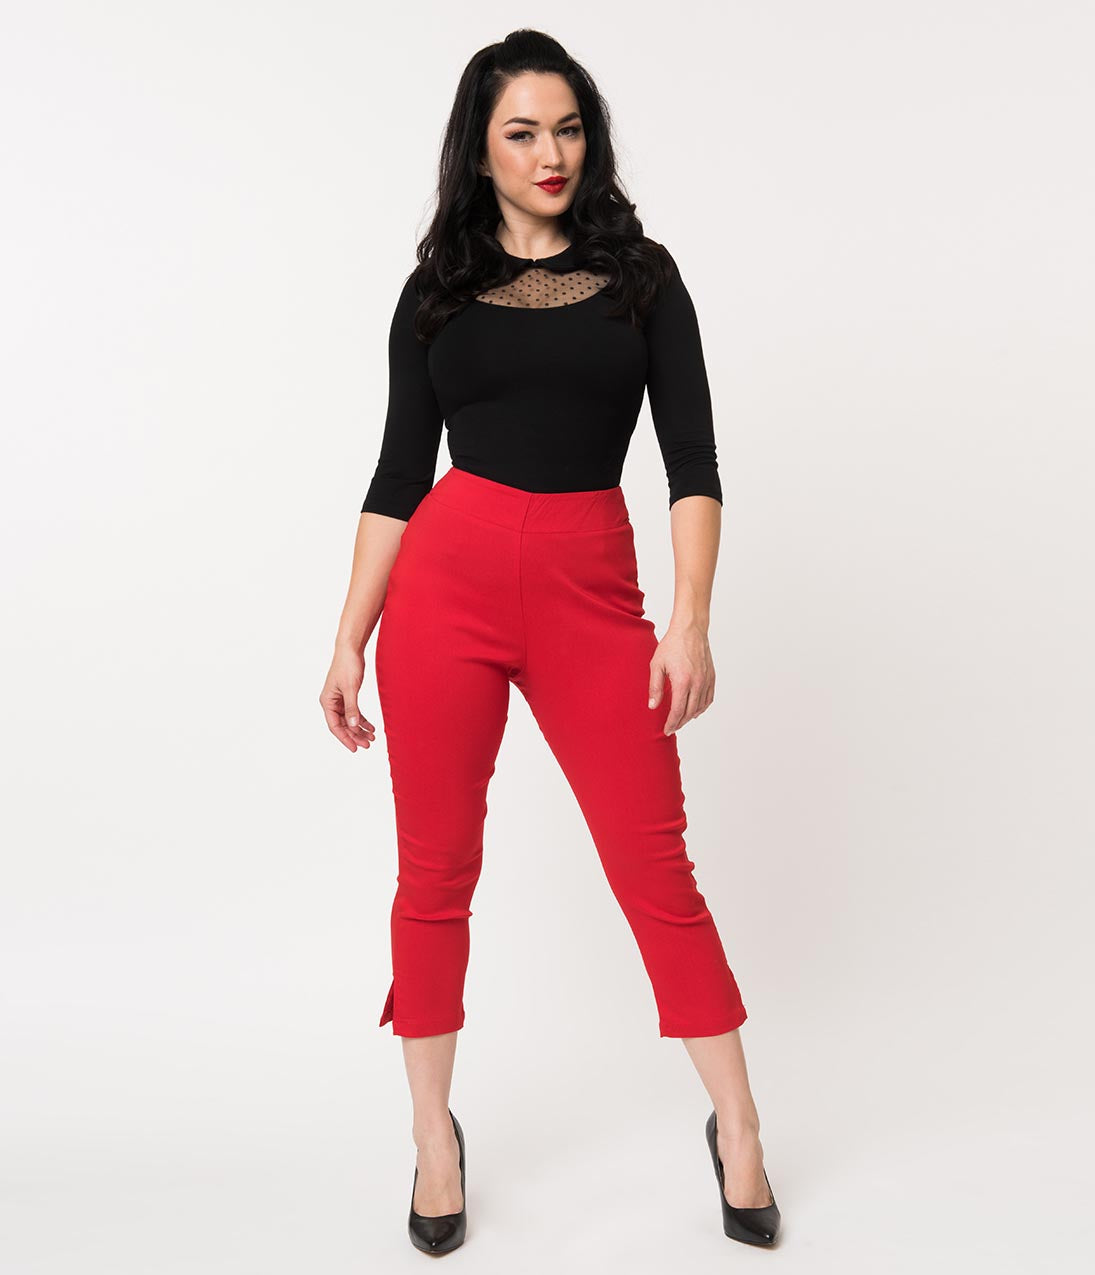 1950s Pants History for Women Unique Vintage Red High Waist Rachelle Capri Pants $48.00 AT vintagedancer.com